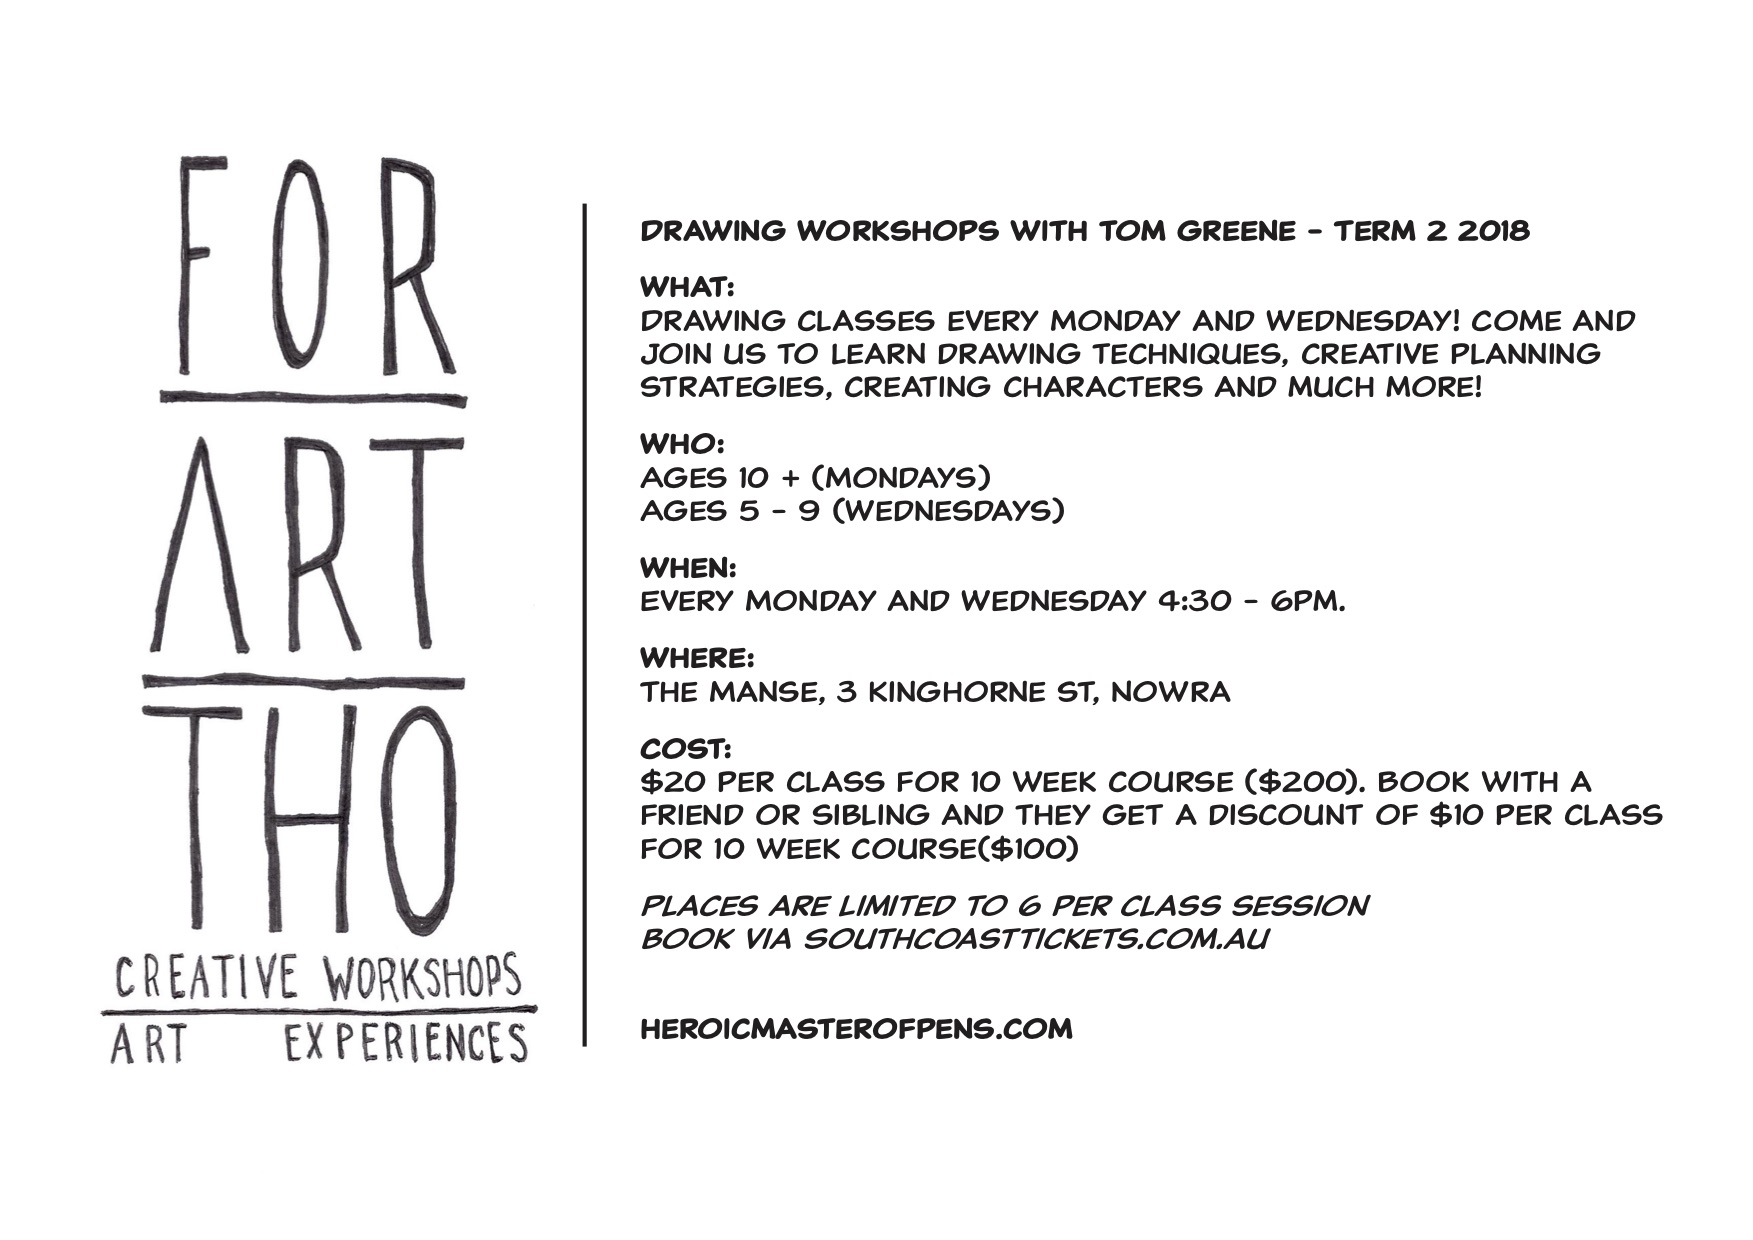 Drawing Workshop Sessions With Tom Greene - Term 2/2018